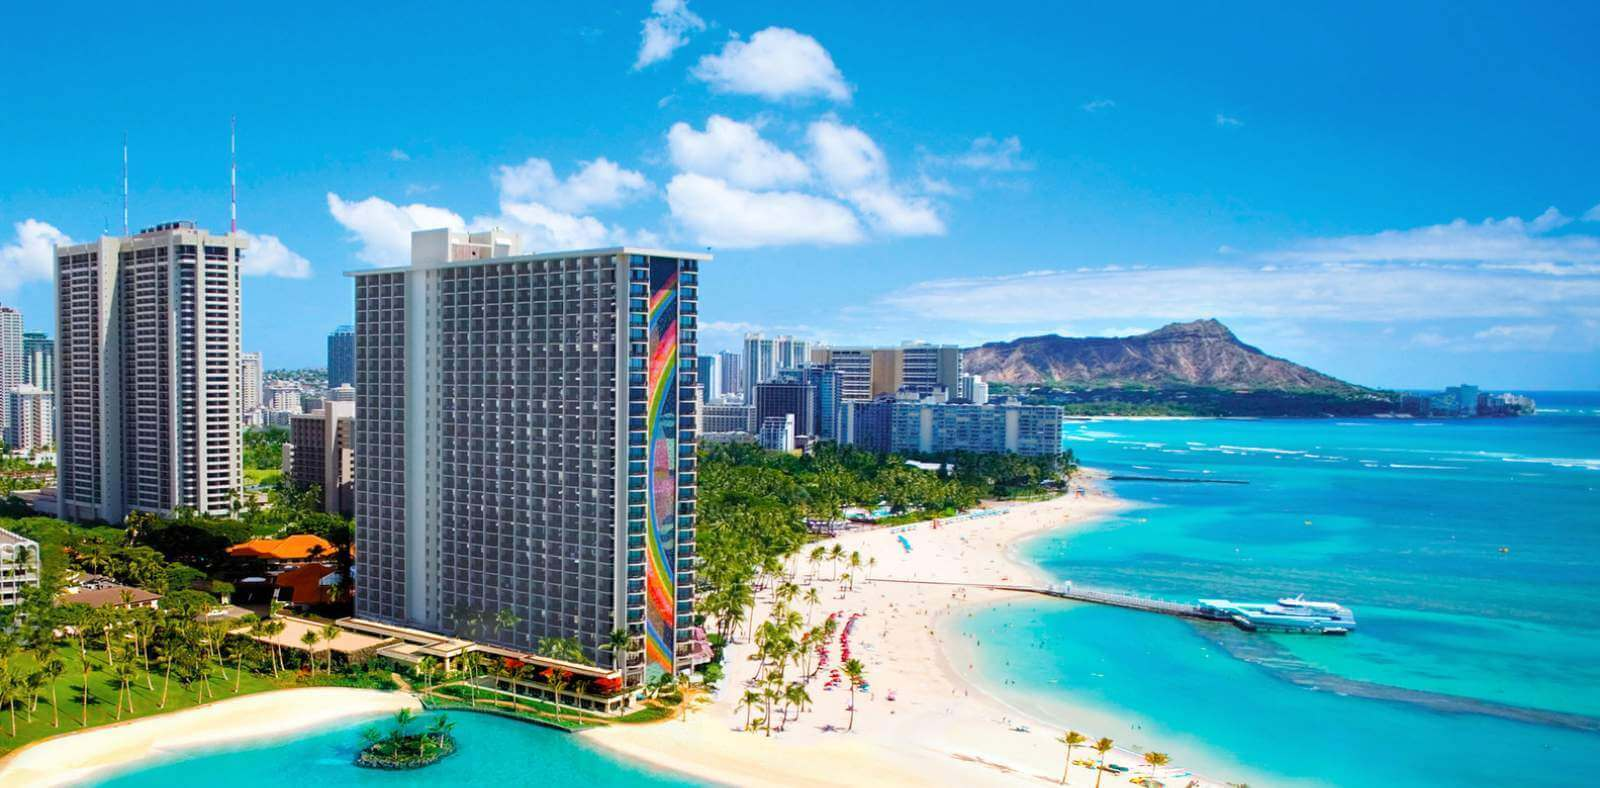 Hilton Hawaiian Village Waikiki Beach - Best Value Vacations